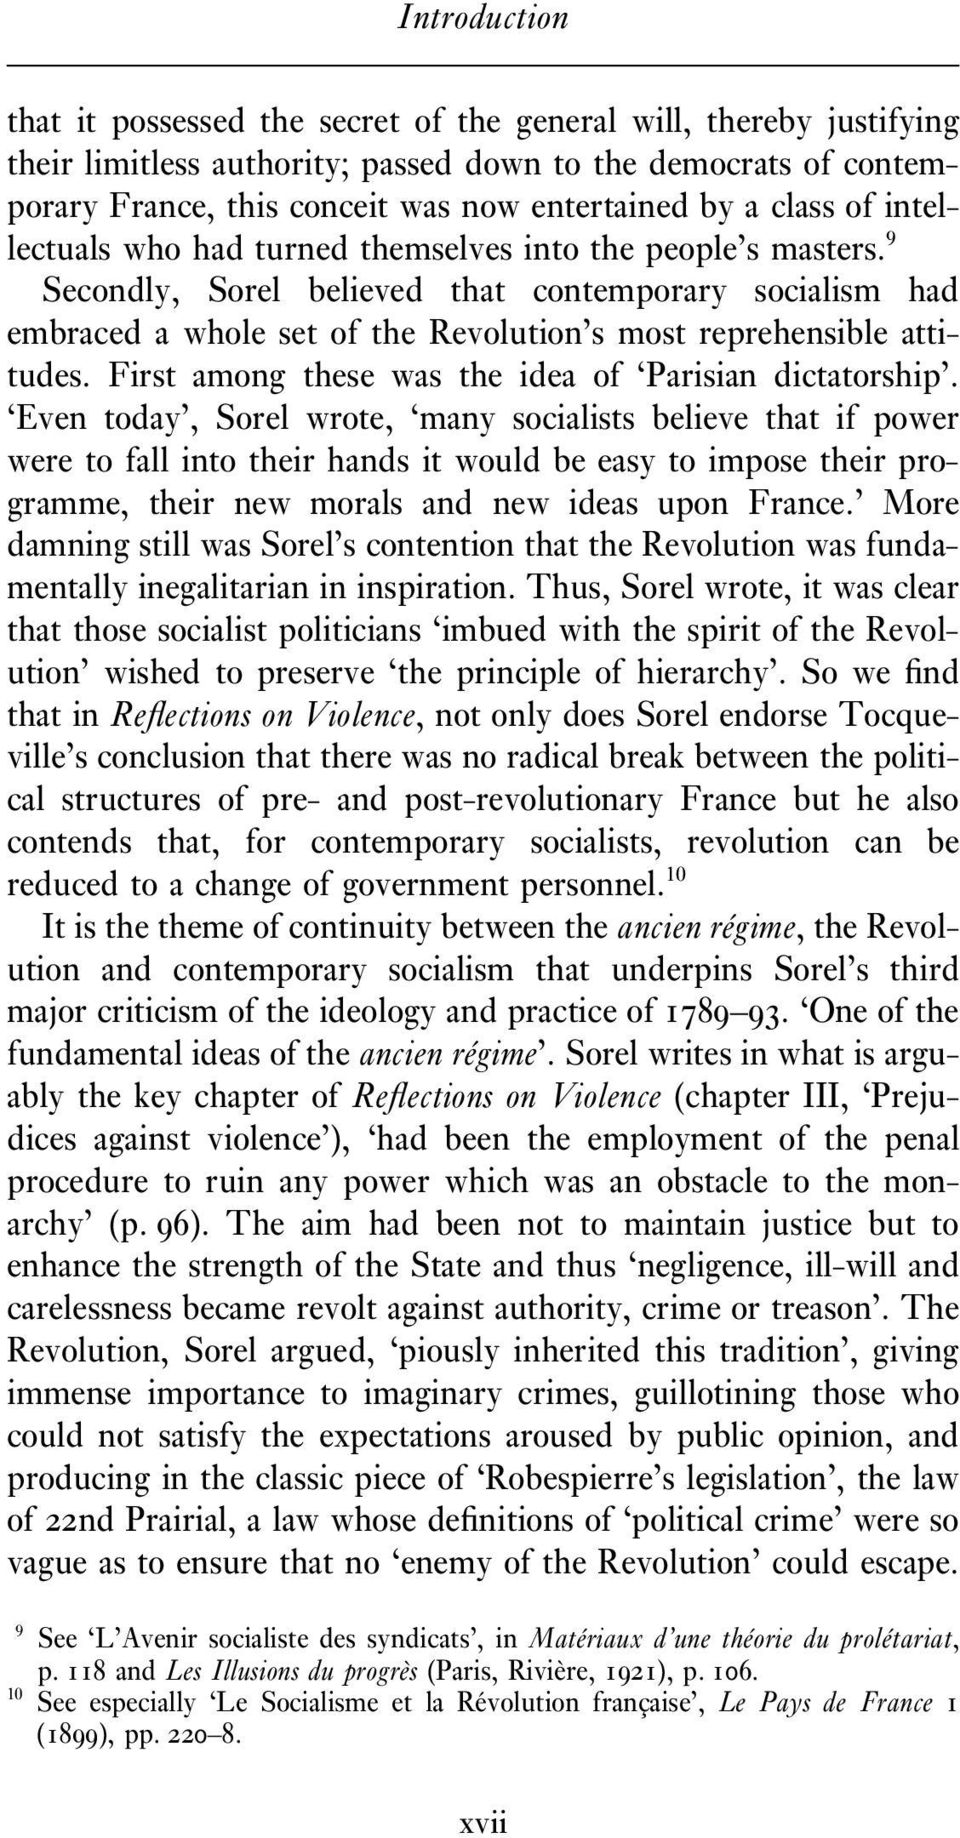 9 Secondly, Sorel believed that contemporary socialism had embraced a whole set of the Revolution s most reprehensible attitudes. First among these was the idea of Parisian dictatorship.